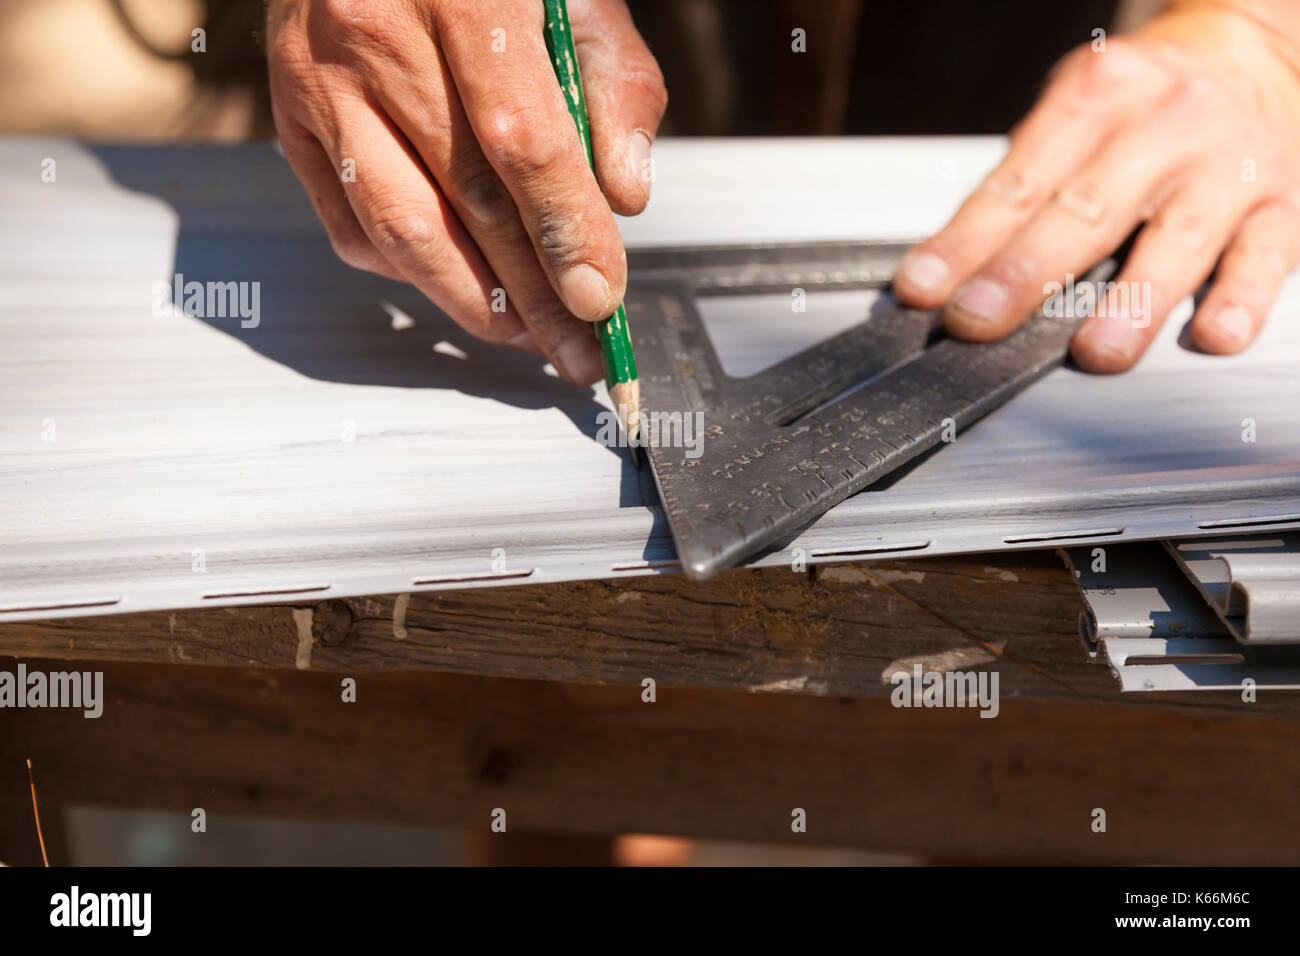 A construction worker marking vinyl siding using a pencil and a triangle or set square in Ontario, Canada. - Stock Image